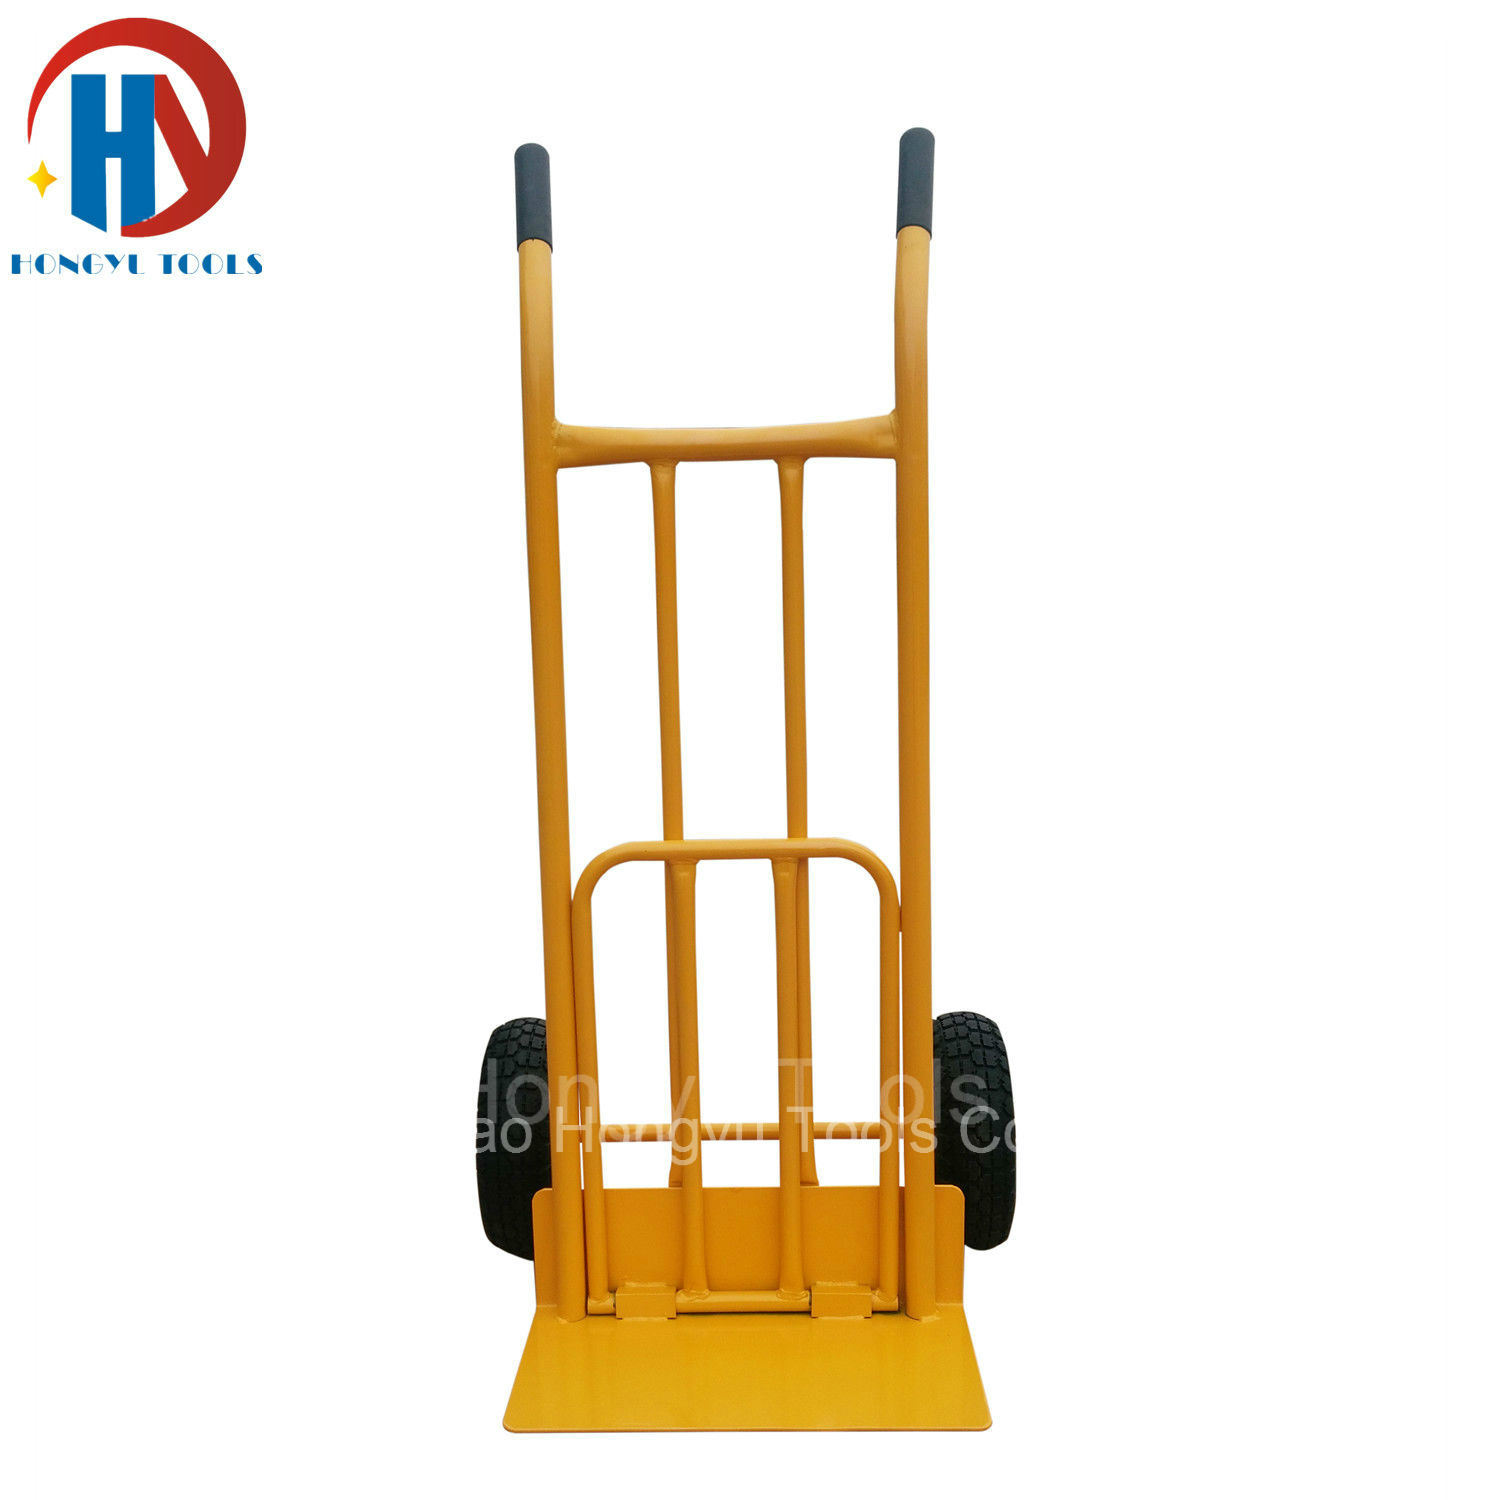 250kgs Floding Hand Truck/Hand Trolley